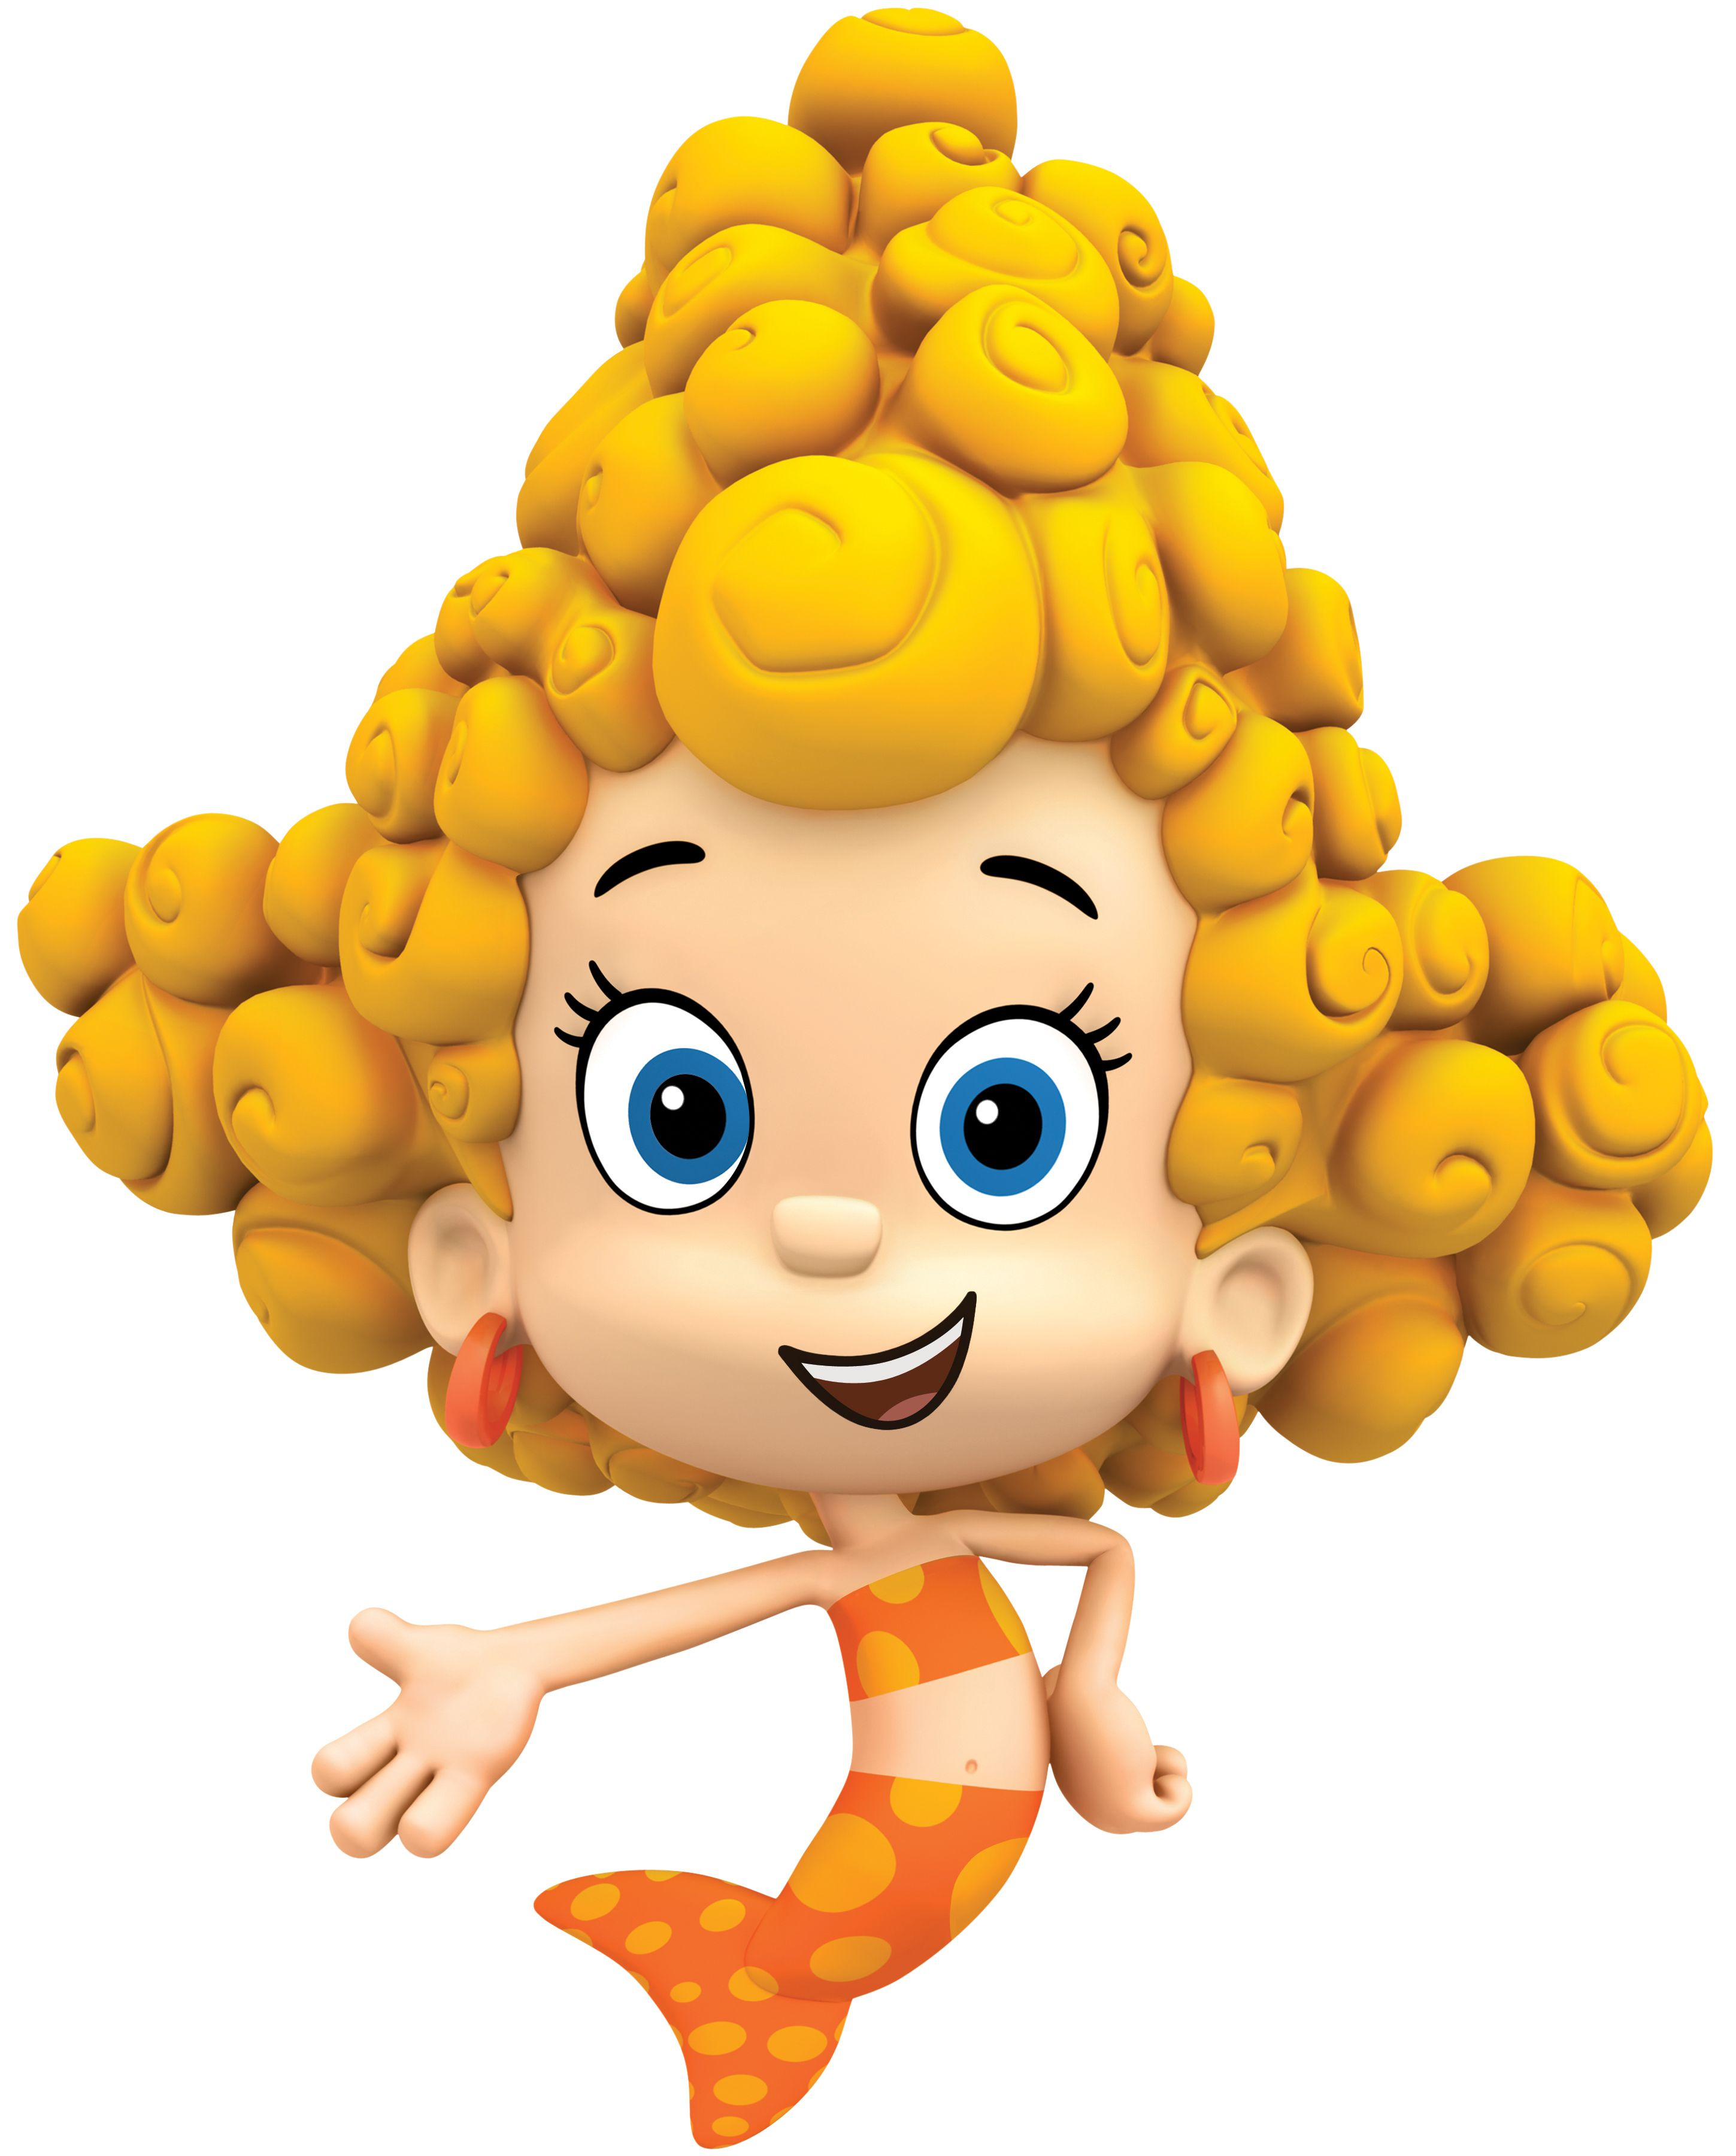 characters from bubble guppies nick jr tv show